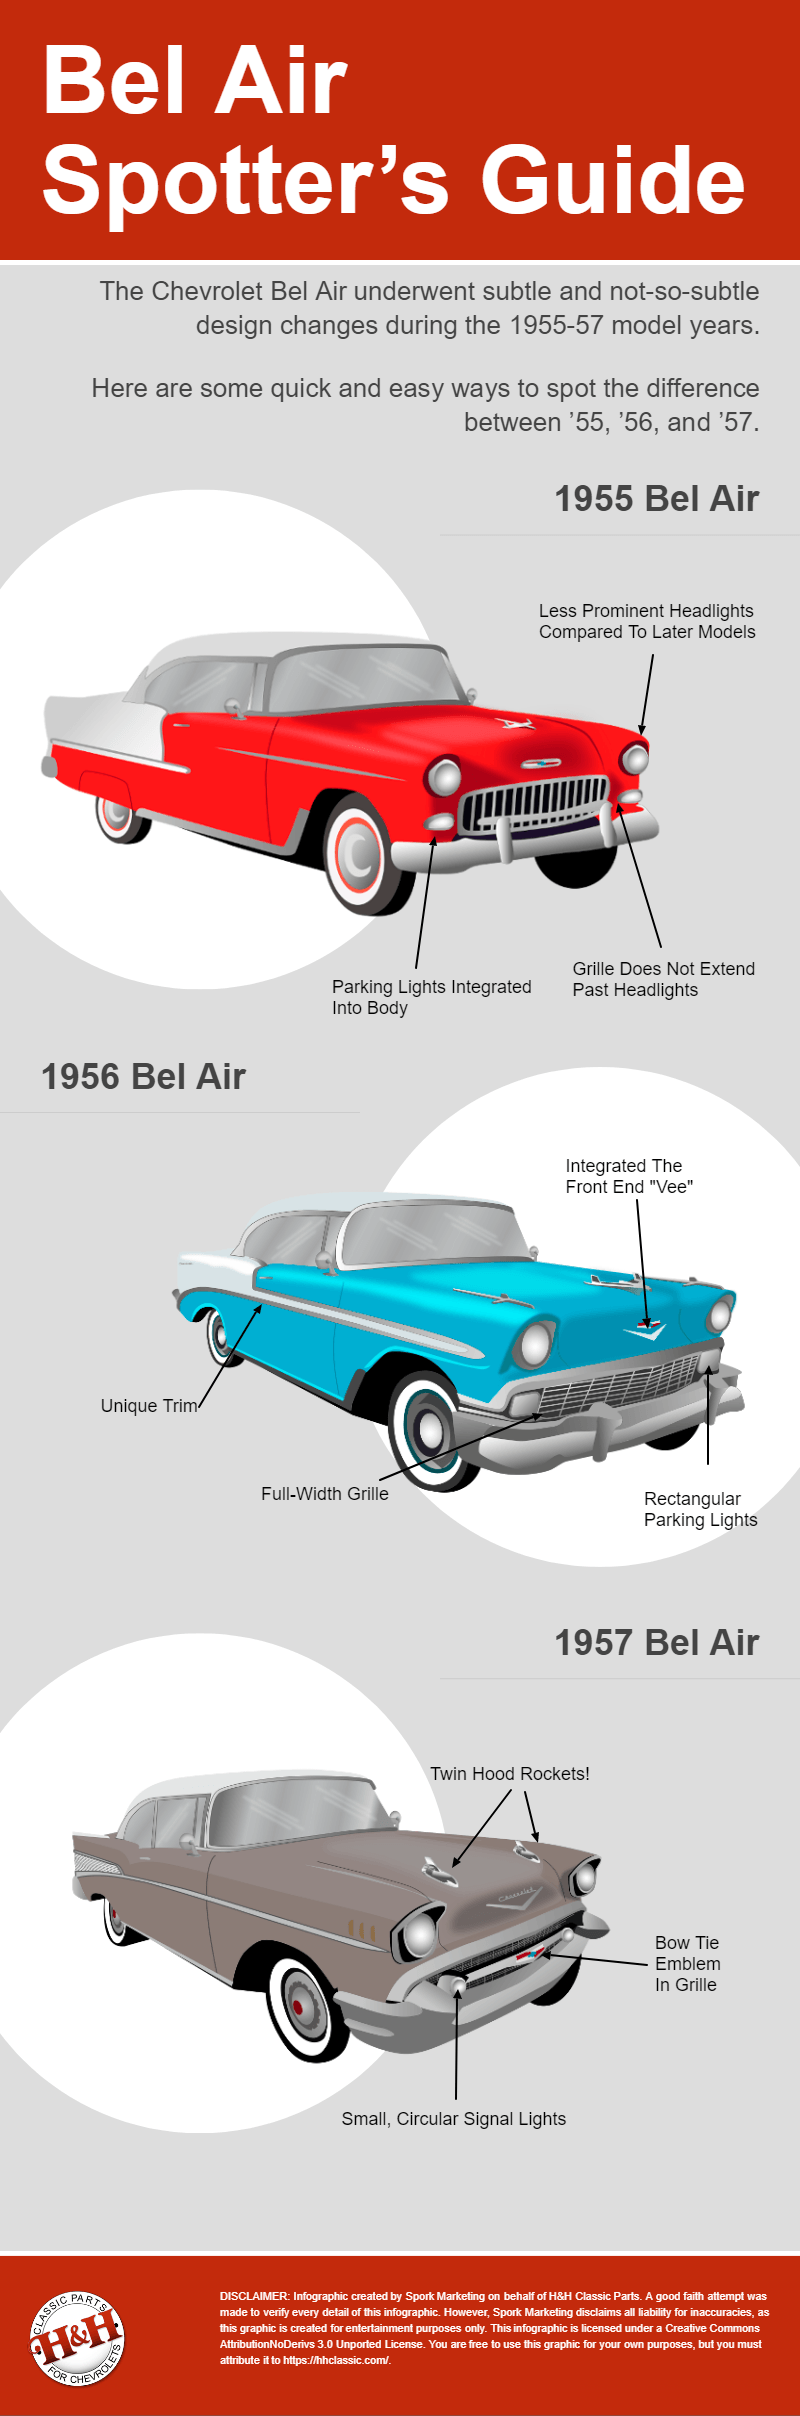 Bel Air spotters guide